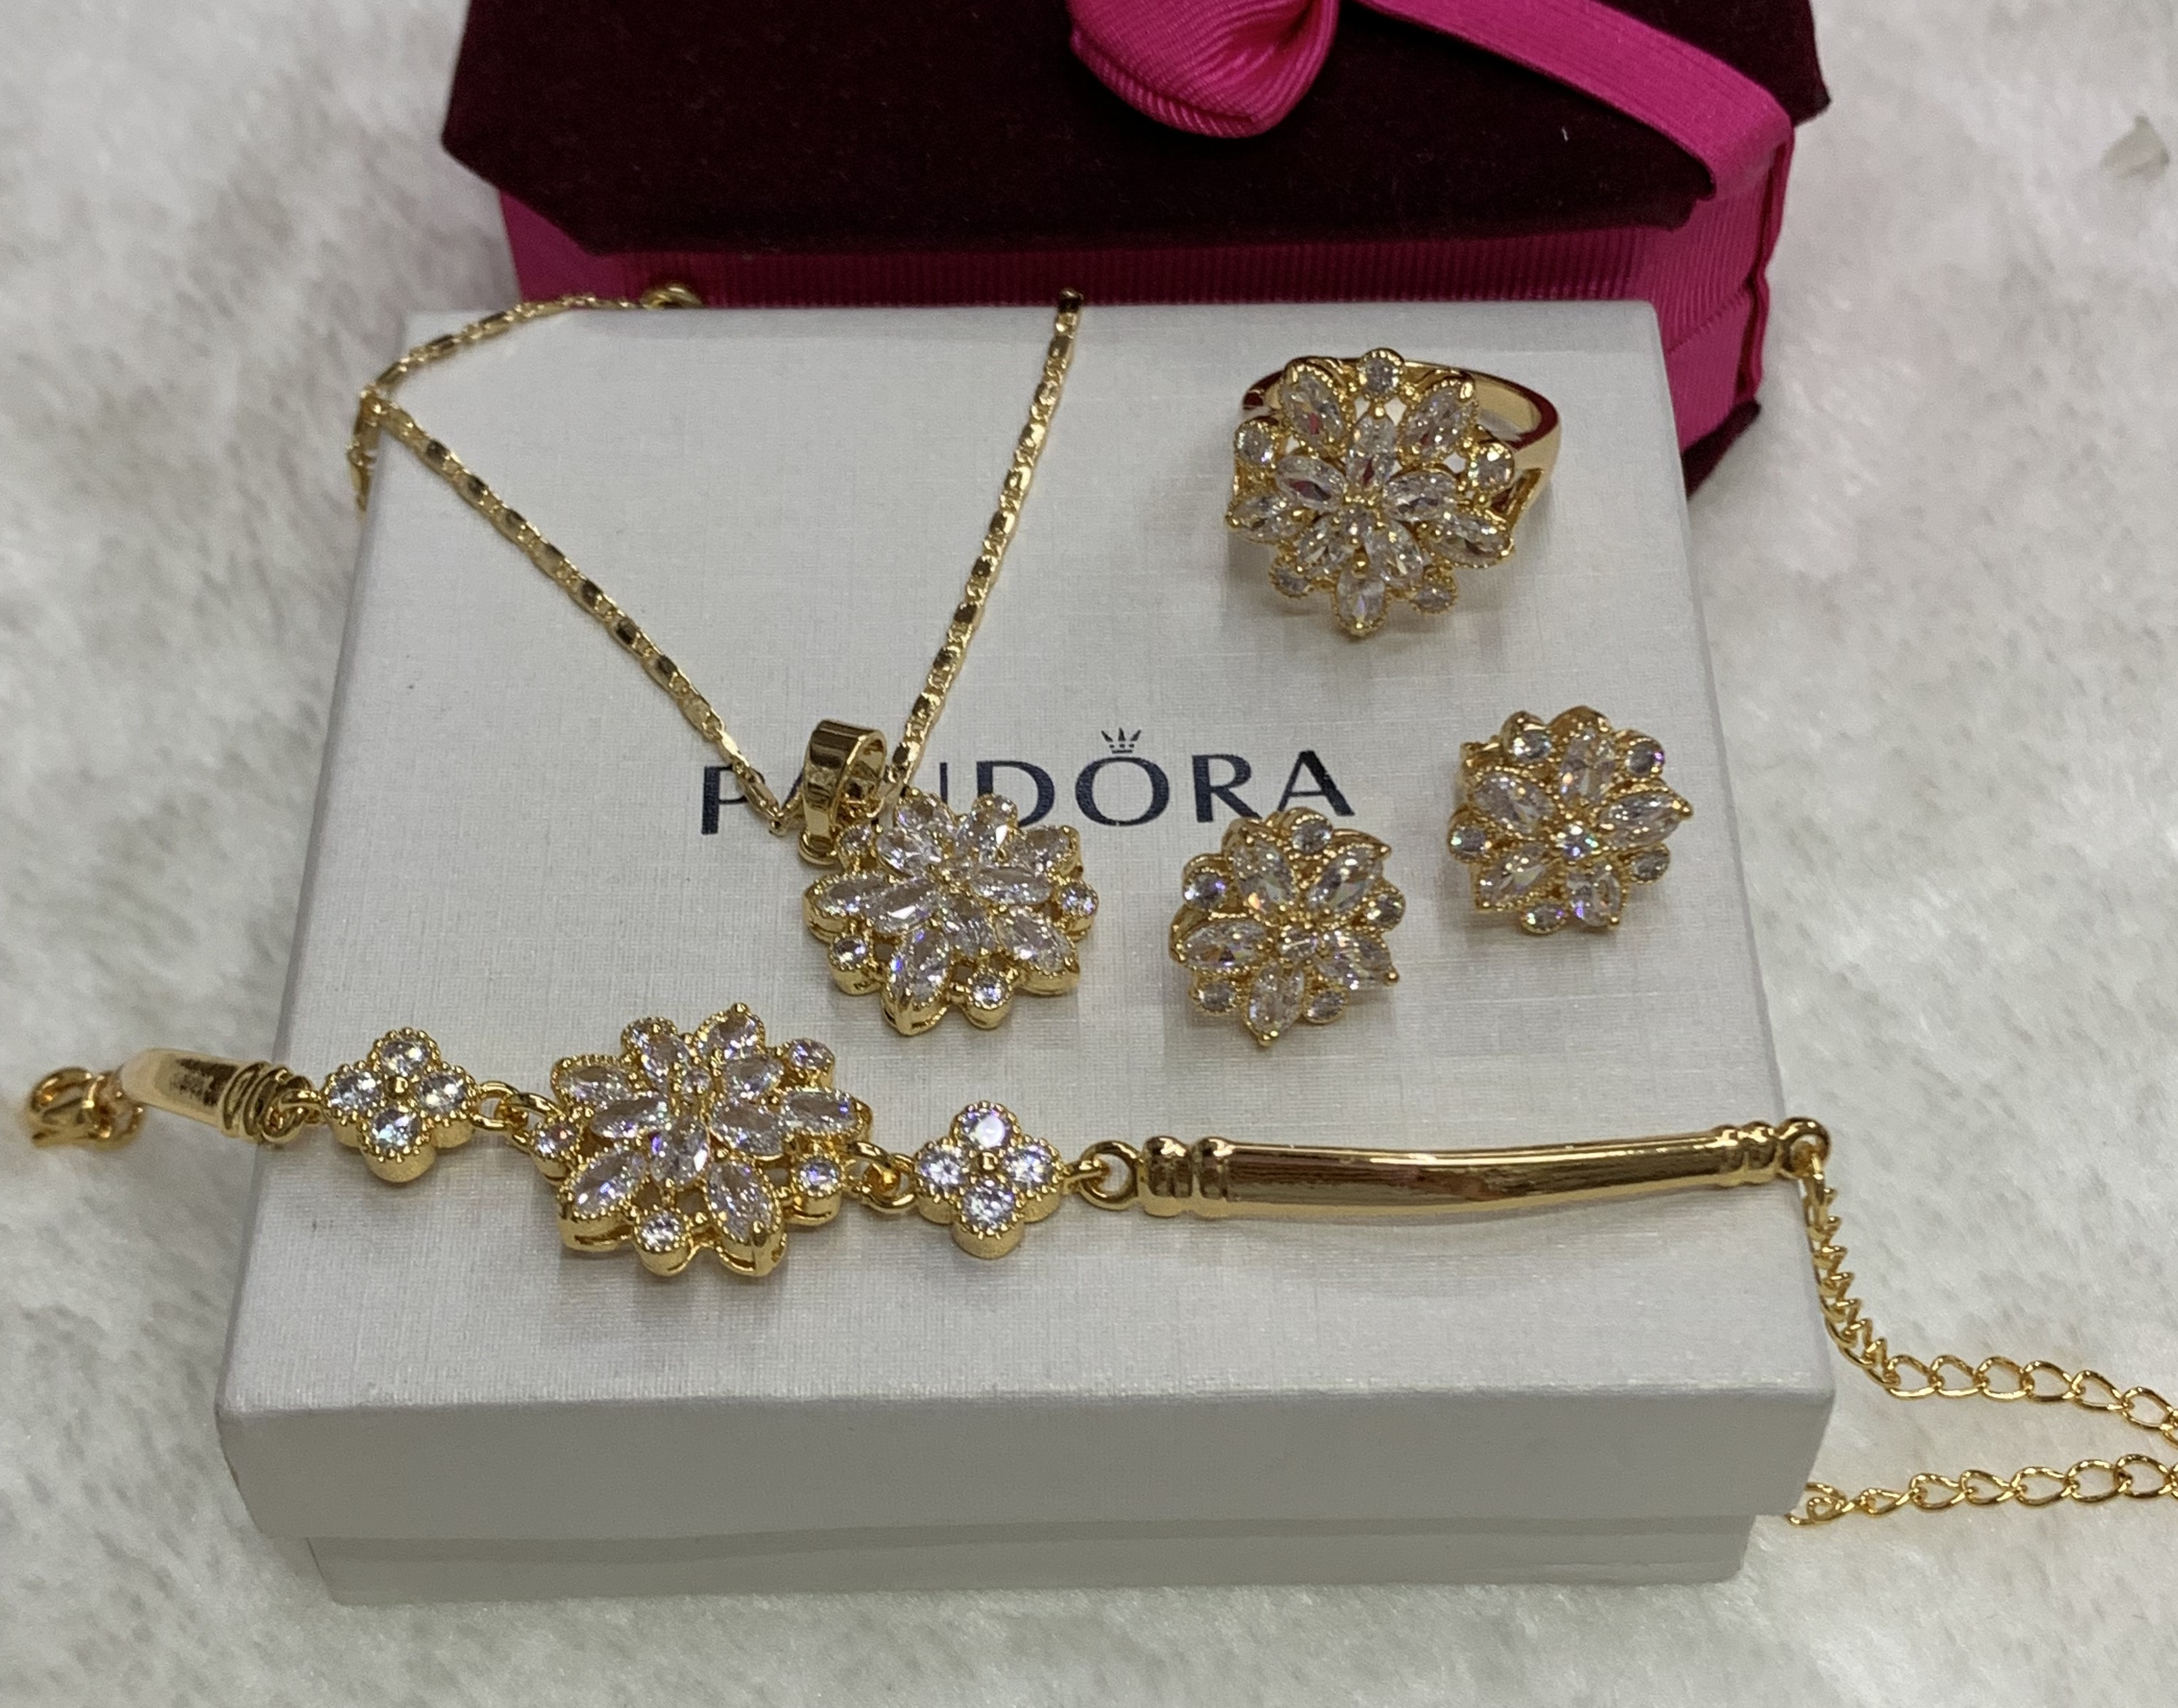 c2e0fd2286 Specifications of Bangkok 18K Goldmix Rosegold Jewellery sets with Swarovski  Stones. Brand. SAVE AND SHOP